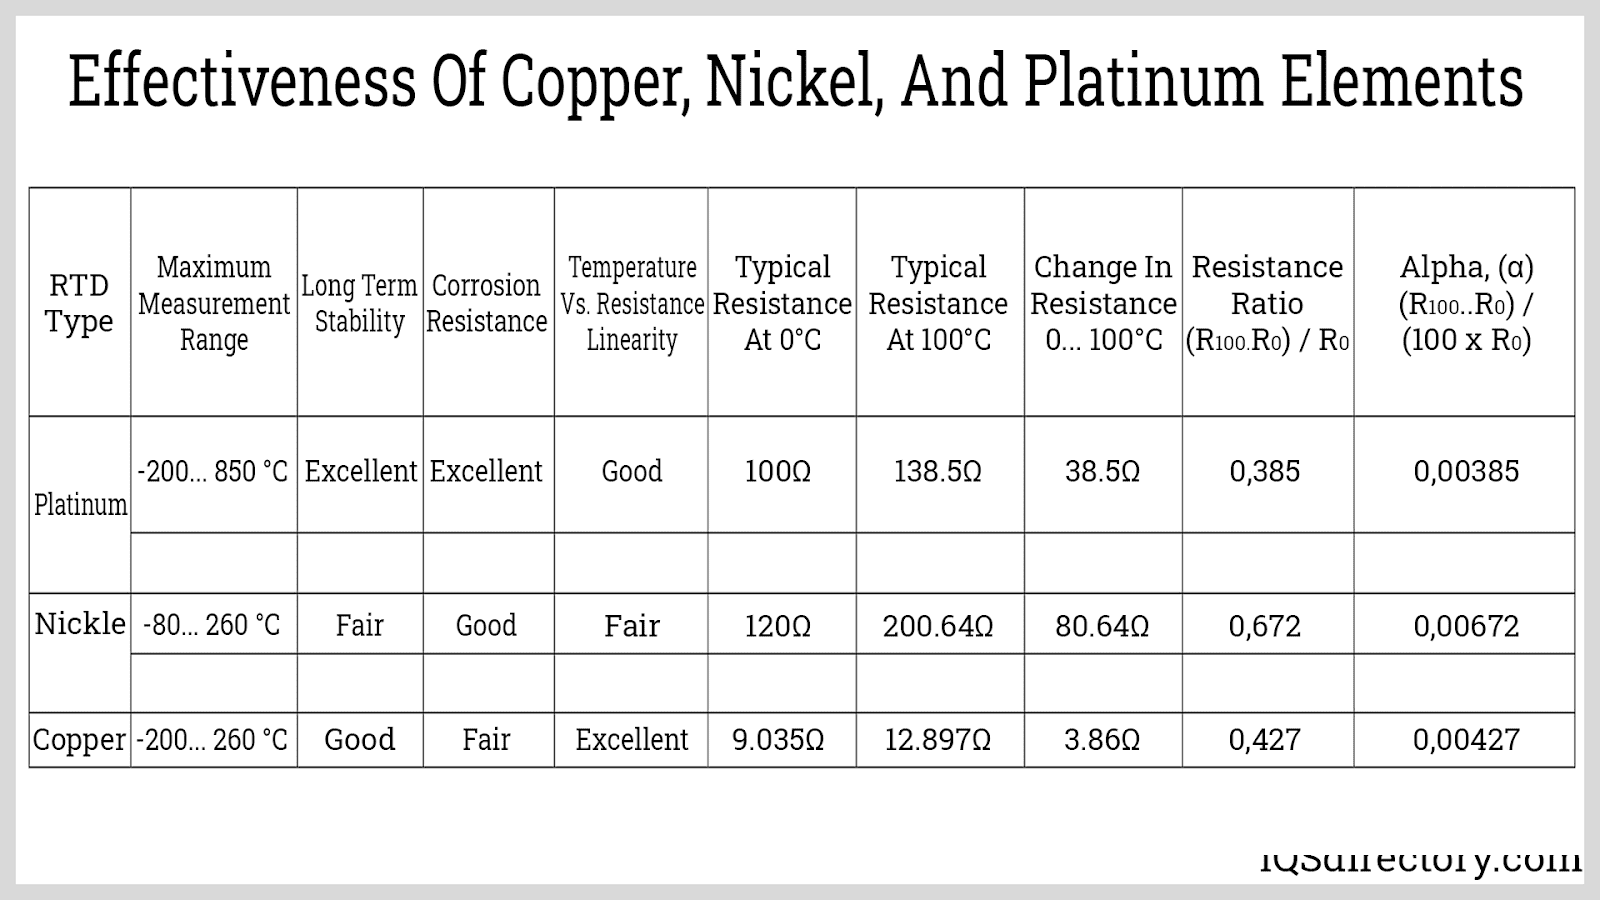 Effectiveness of Copper, Nickel, and Platinum Elements